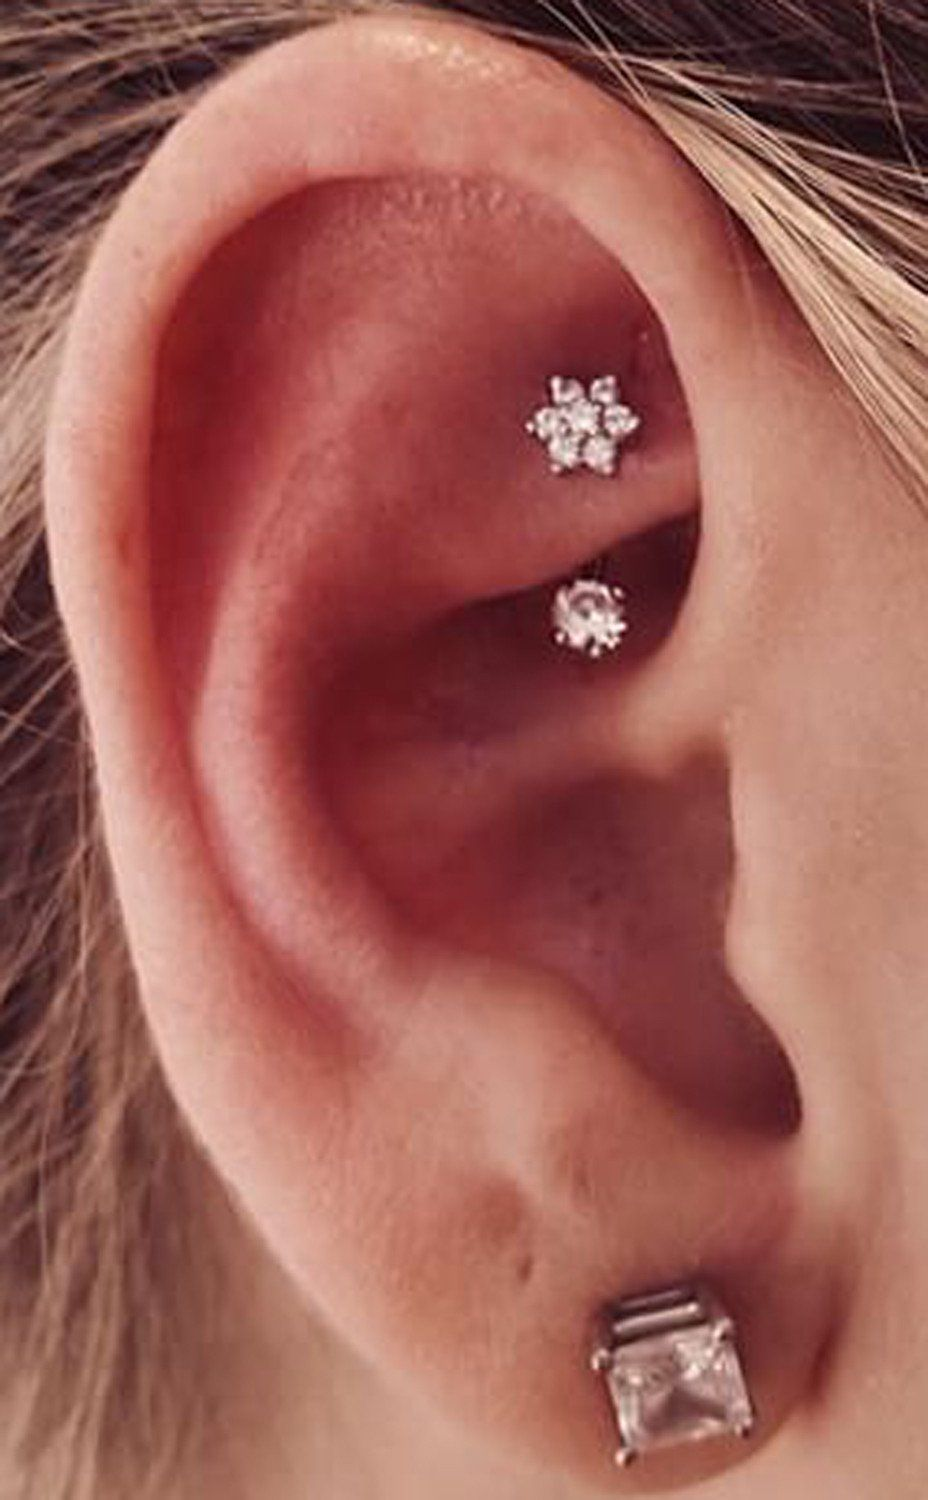 Steal These 30 Ear Piercing Ideas | Ear Piercing Ideas ...